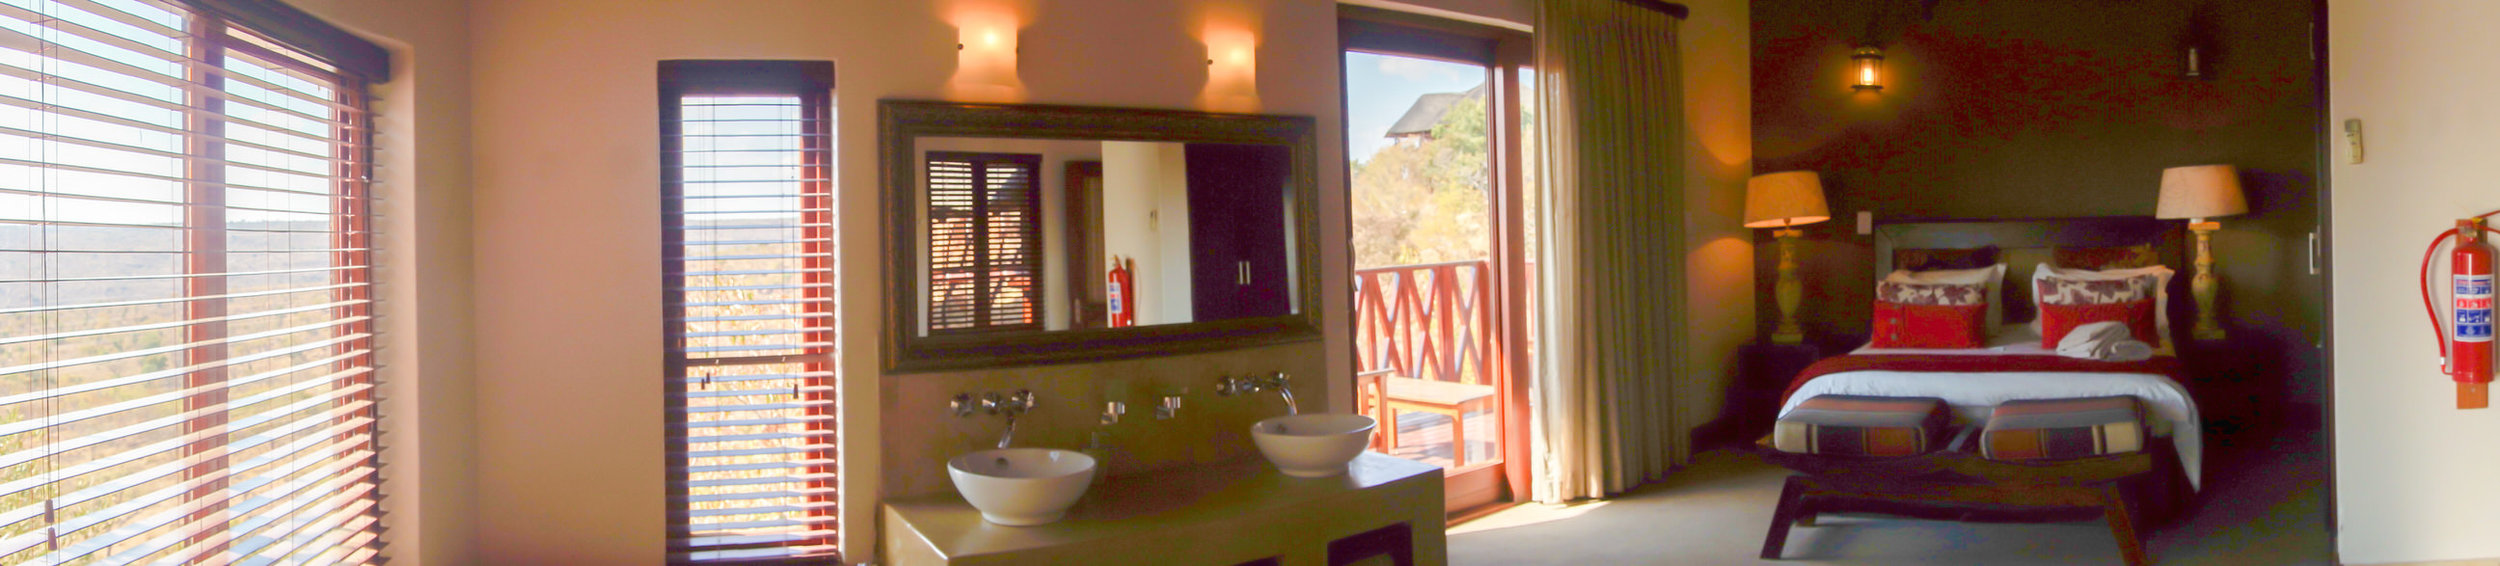 Panorama of Chalet Bedroom